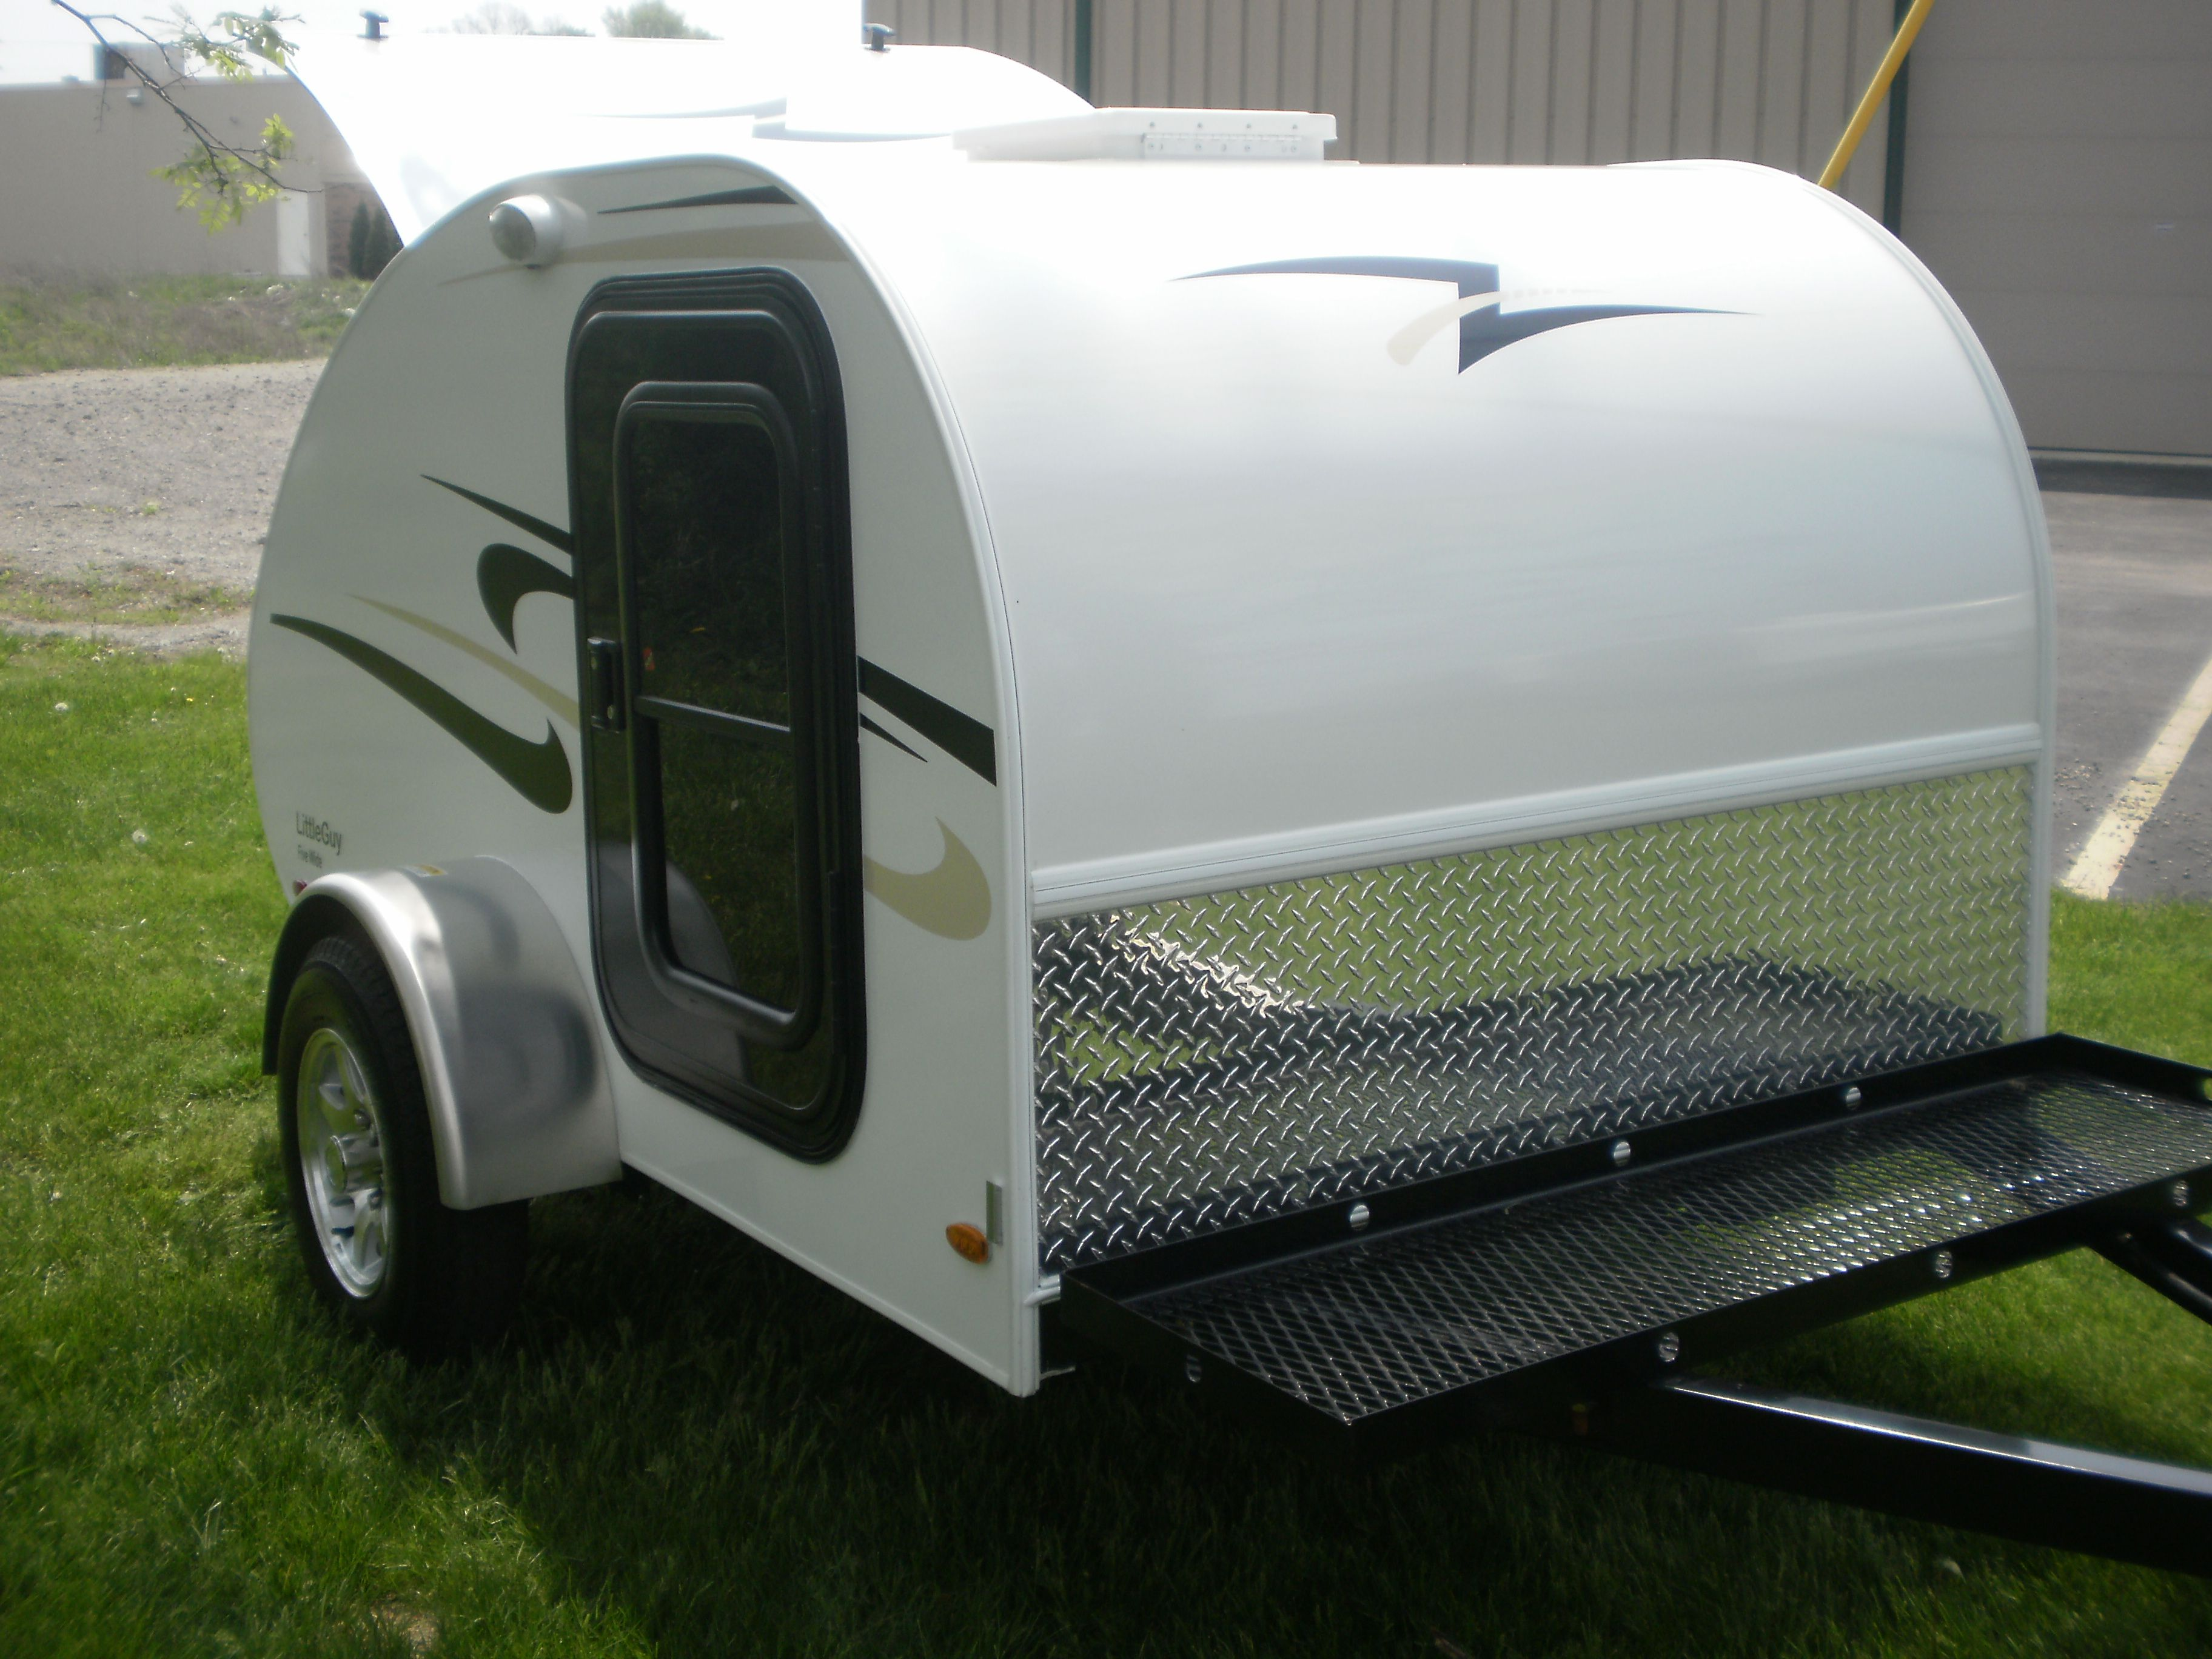 Little guy worldwide united states and canada leading teardrop camper trailer sales including teardrop parts and accessories introduction to little guy